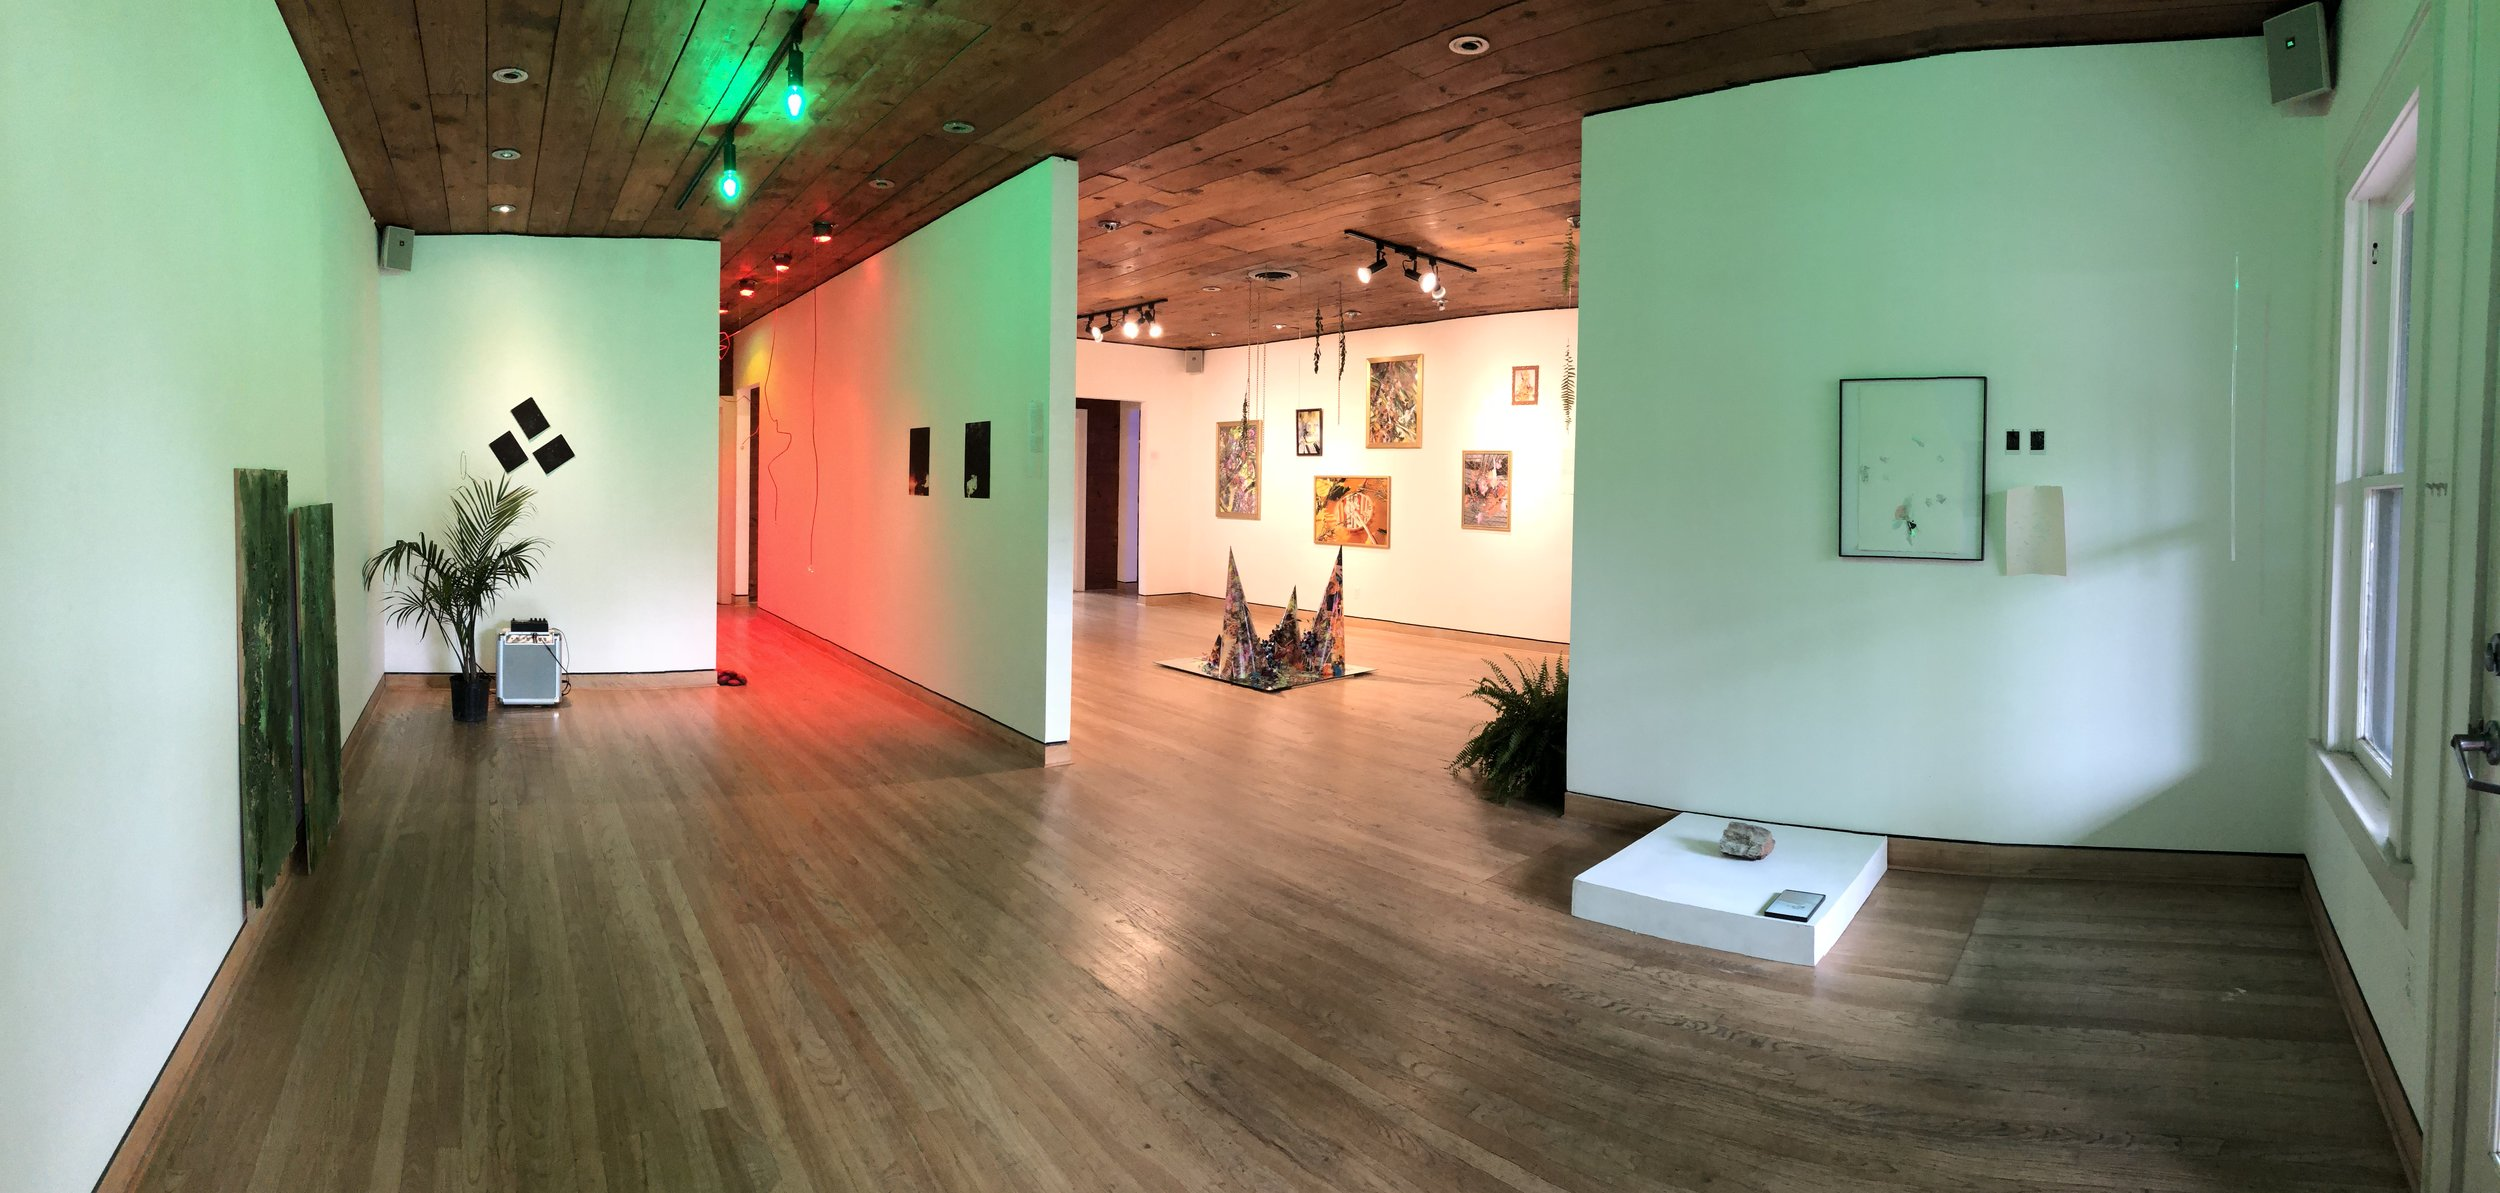 Installation photo from the exhibition  Relief,  2018, Hosted by Flatland Gallery, Featuring the work of Hallie Gluk and Andi Valentine